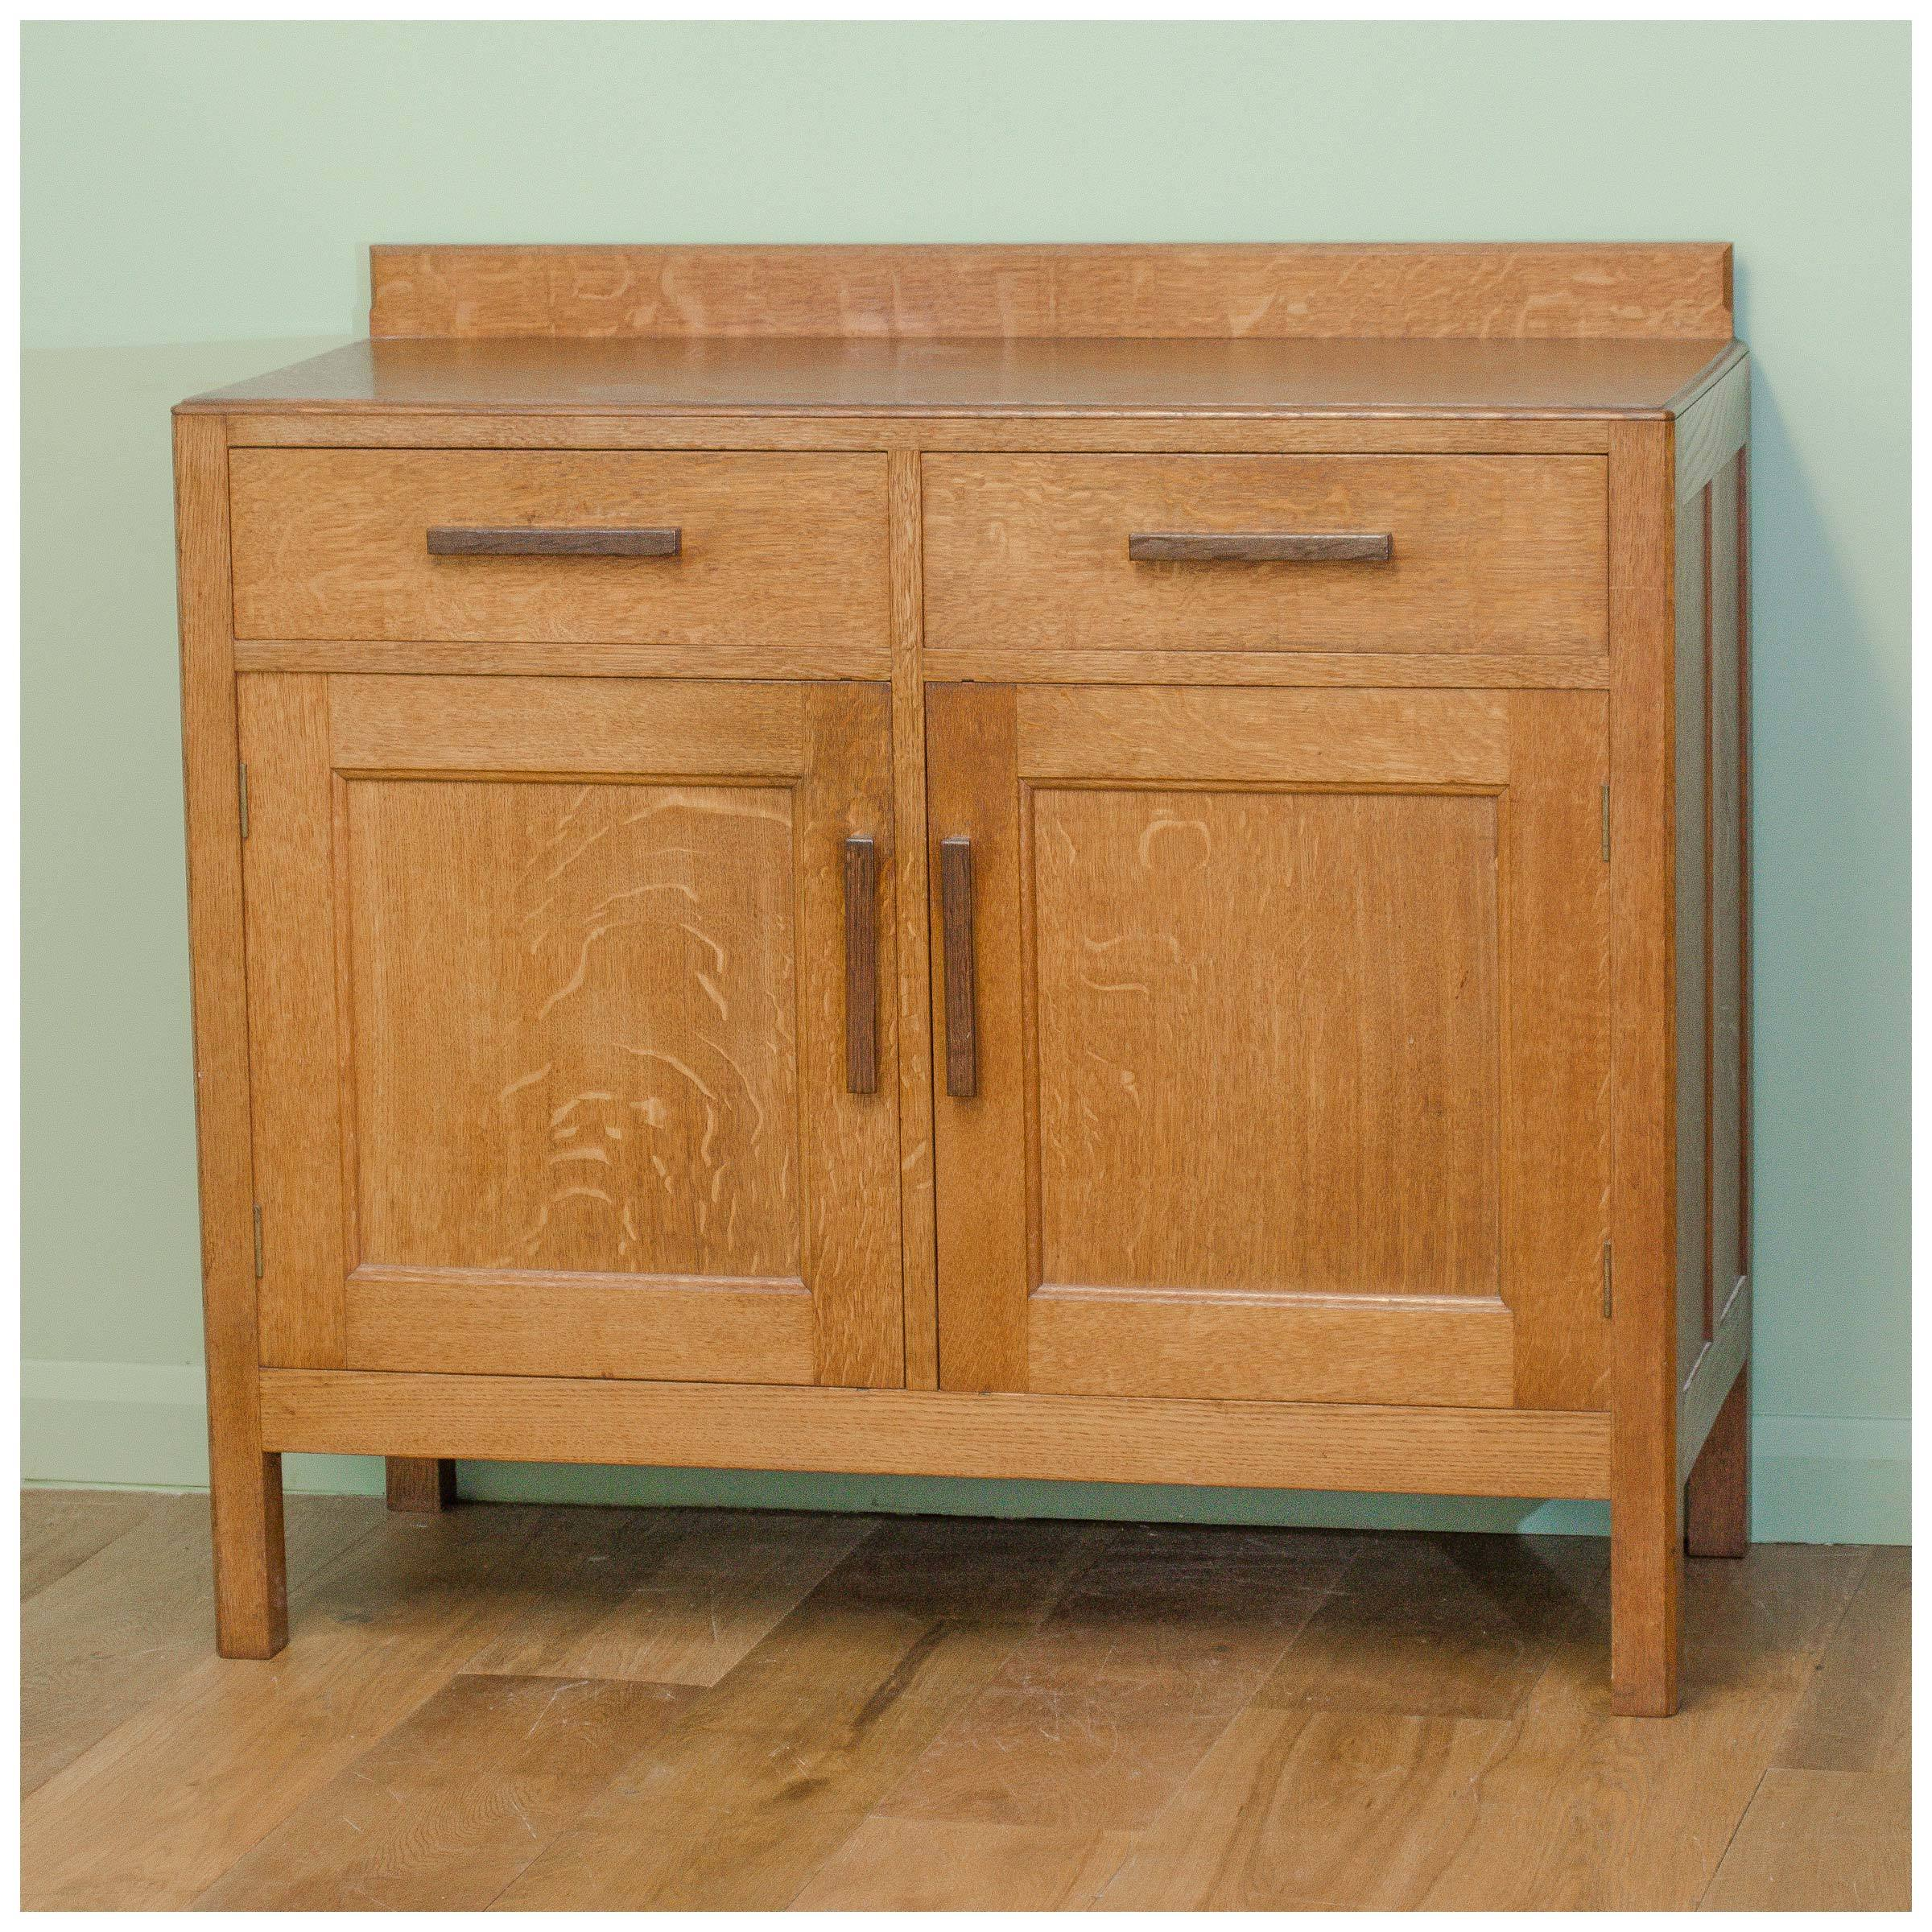 arts-and-crafts-oak-sideboard-by-arthur-w-simpson-the-handicrafts-kendal-b0020204a.jpg